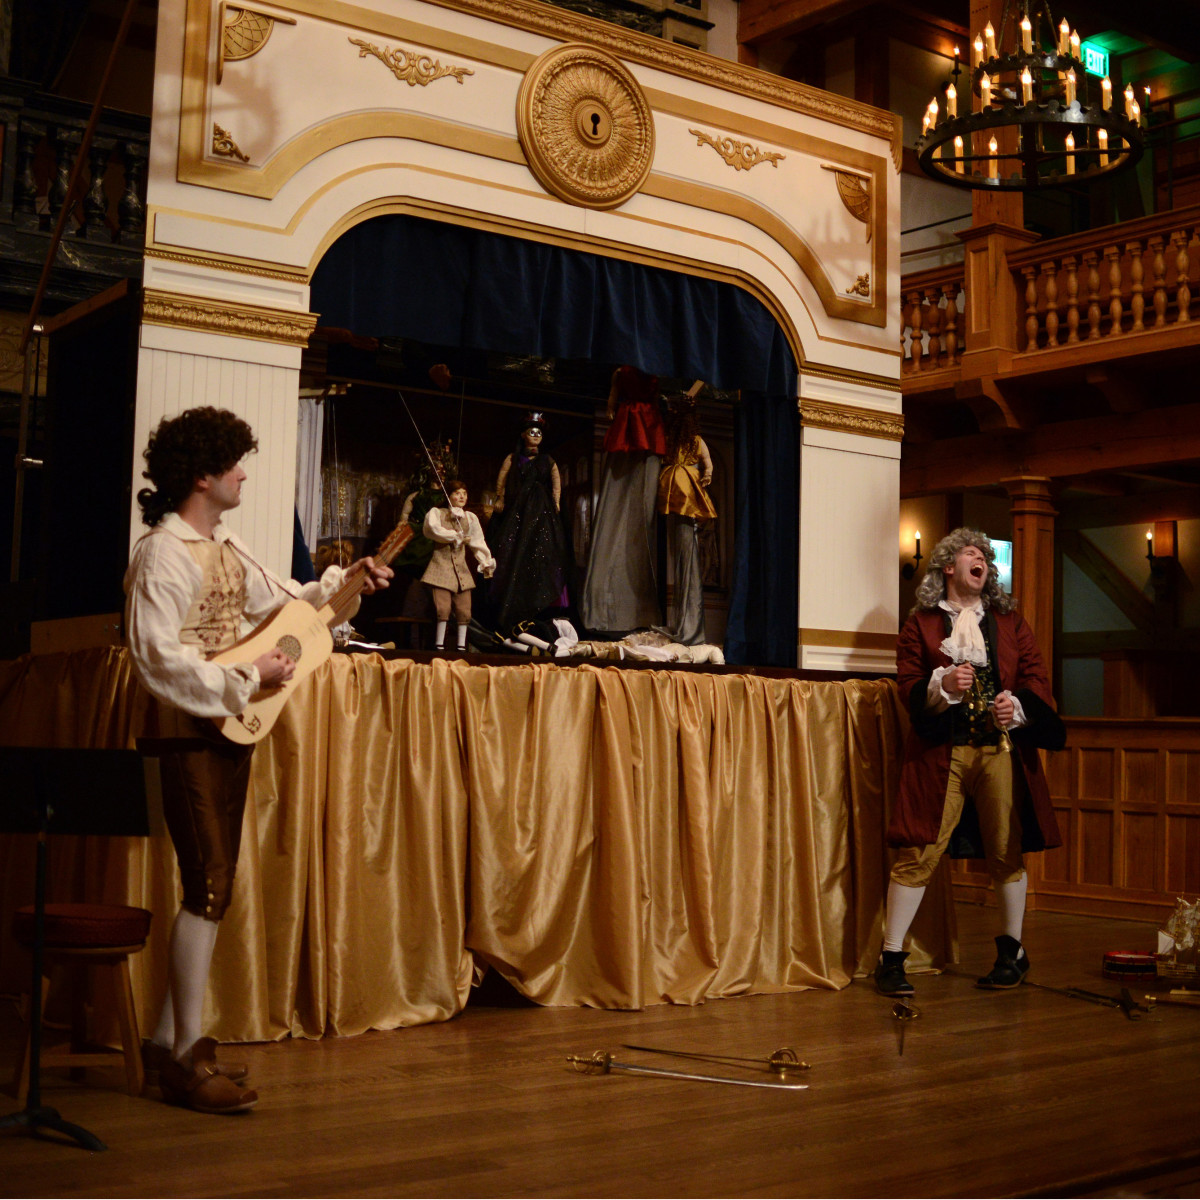 performers and puppets for the Hidden Room production of Der Berstrafte Brudermord, or Hamlet prince of Denmark